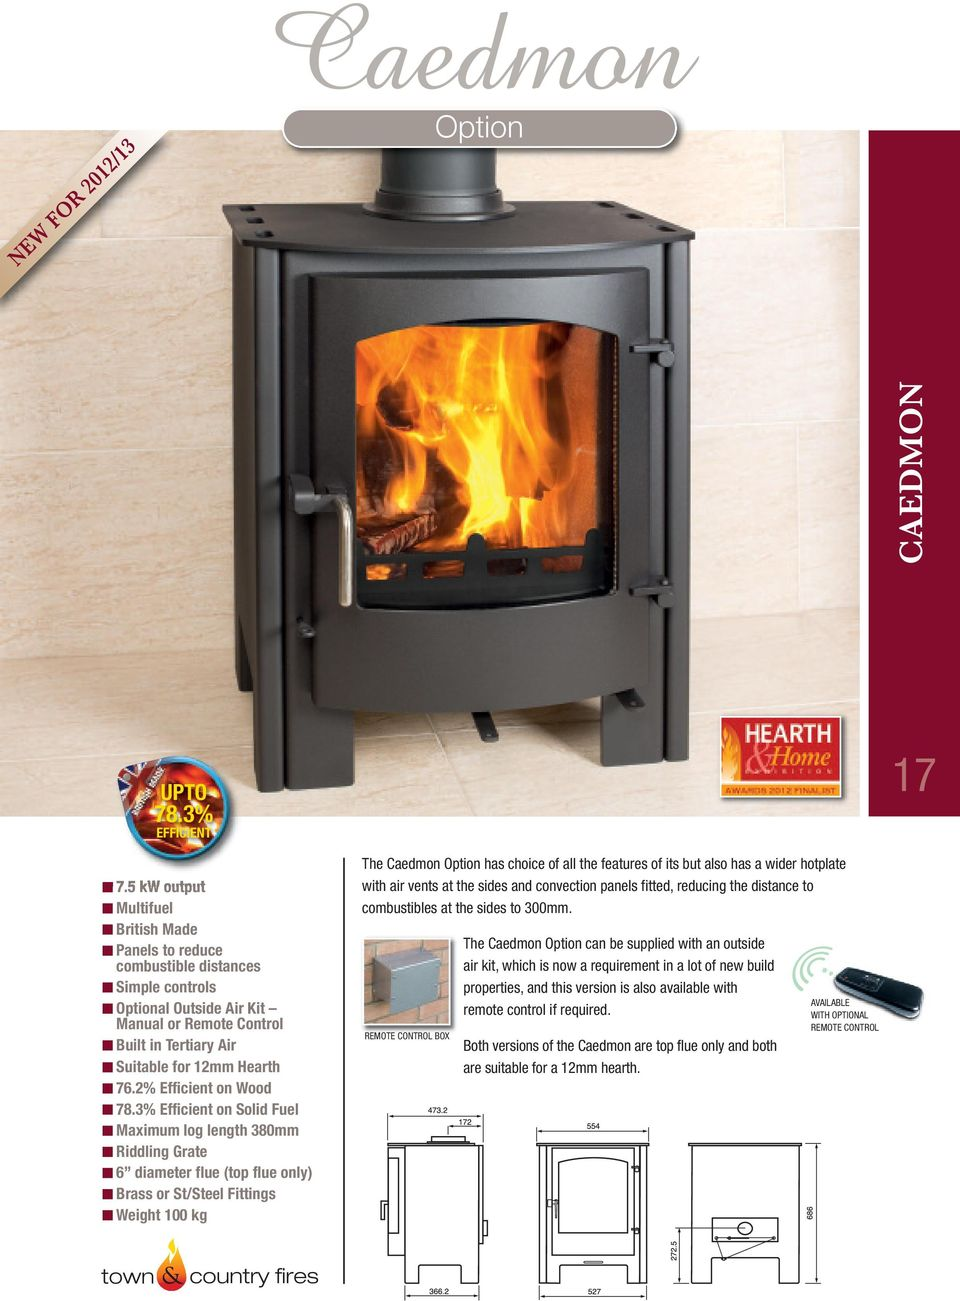 Efficient Stoves That Won T Cost The Earth Pdf Rocket Stove Diagram Oven Fireplace Earthen Pint 3 On Solid Fuel Maximum Log Length 380mm Riddling Grate 6 Diameter Flue